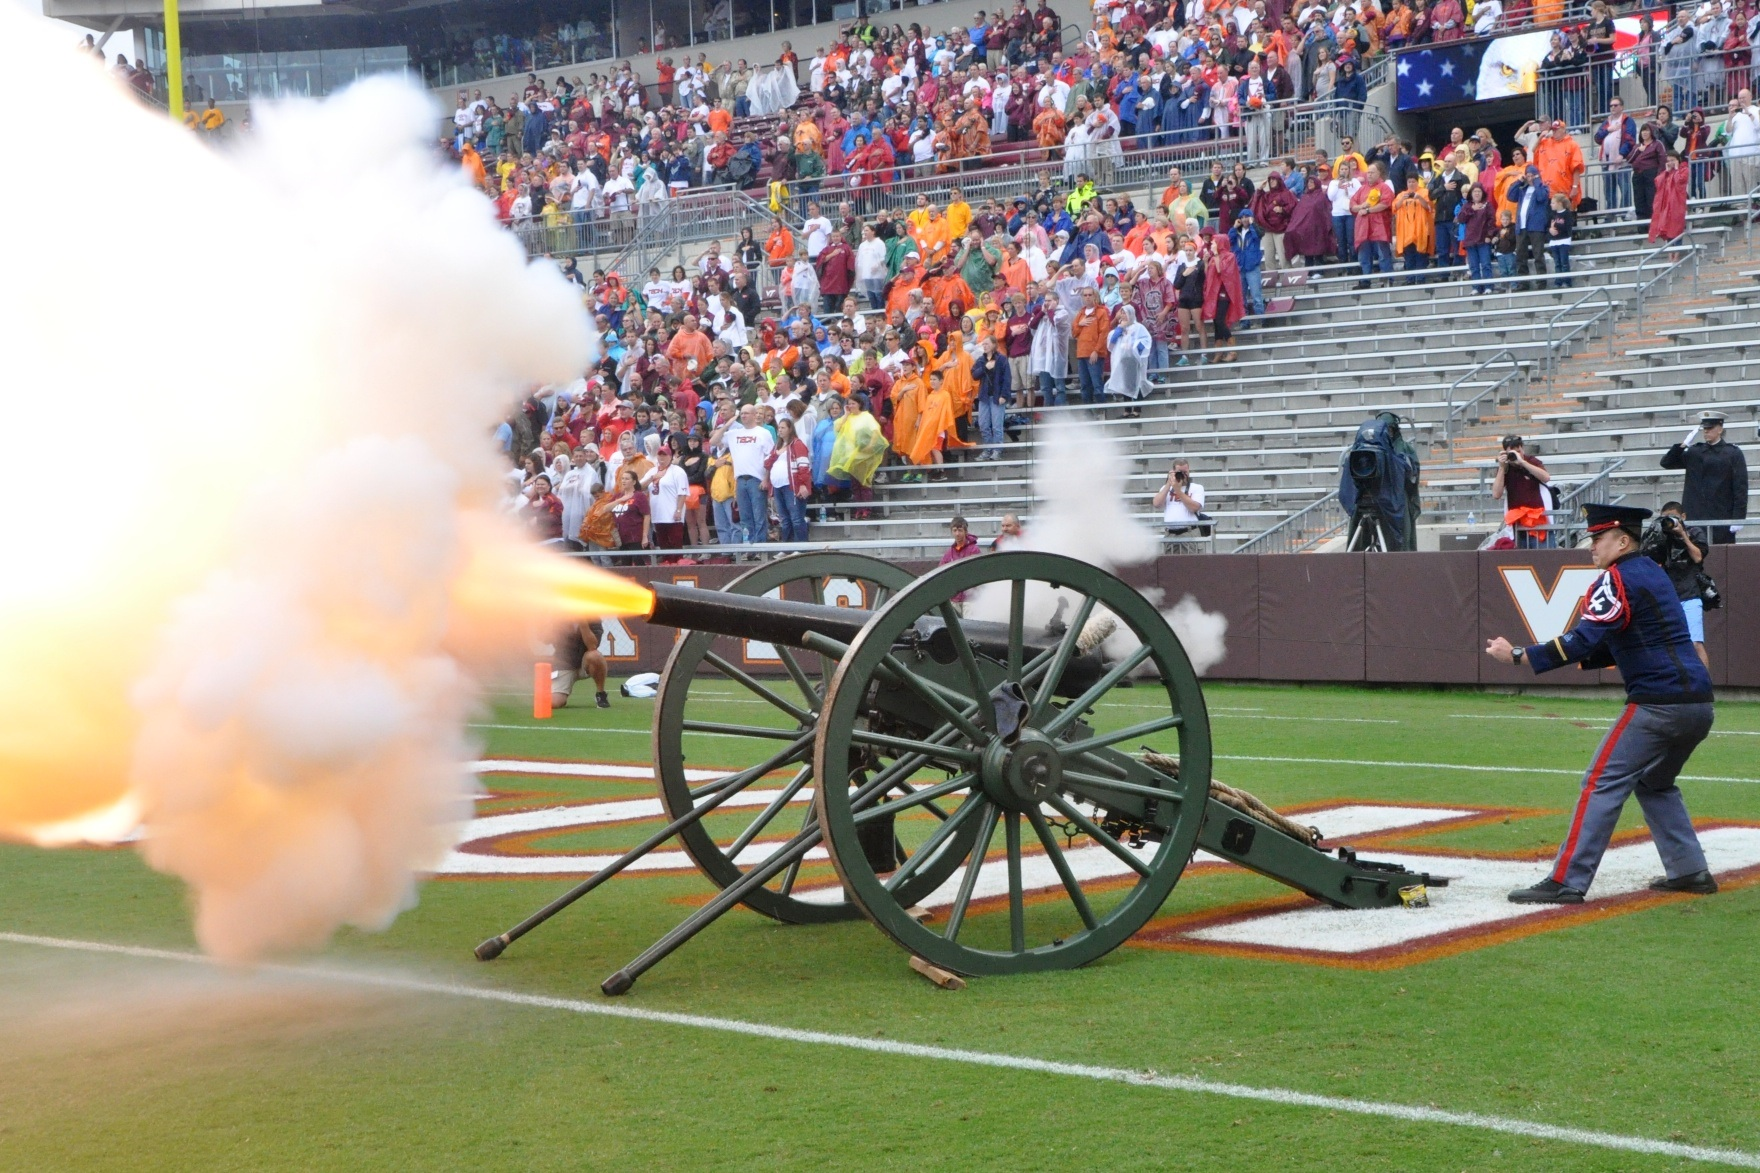 Skipper, the Virginia Tech Corps of Cadets cannon, firing during the National Anthem at a football game